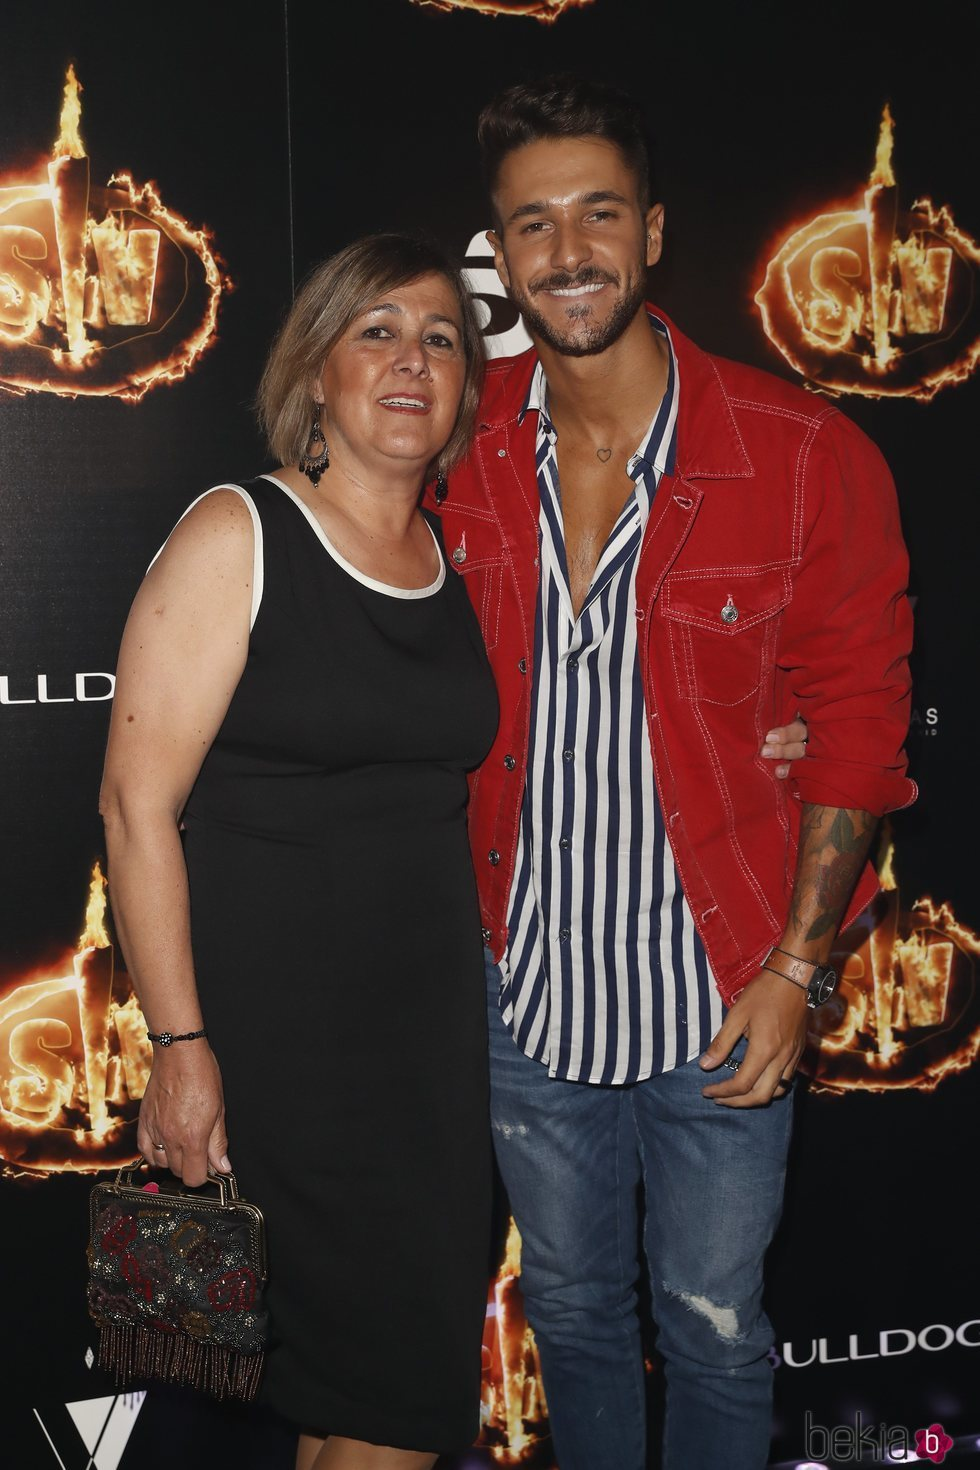 Hugo Paz y su madre, Mercedes Cruz, en la Fiesta Final de 'Supervivientes 2018'